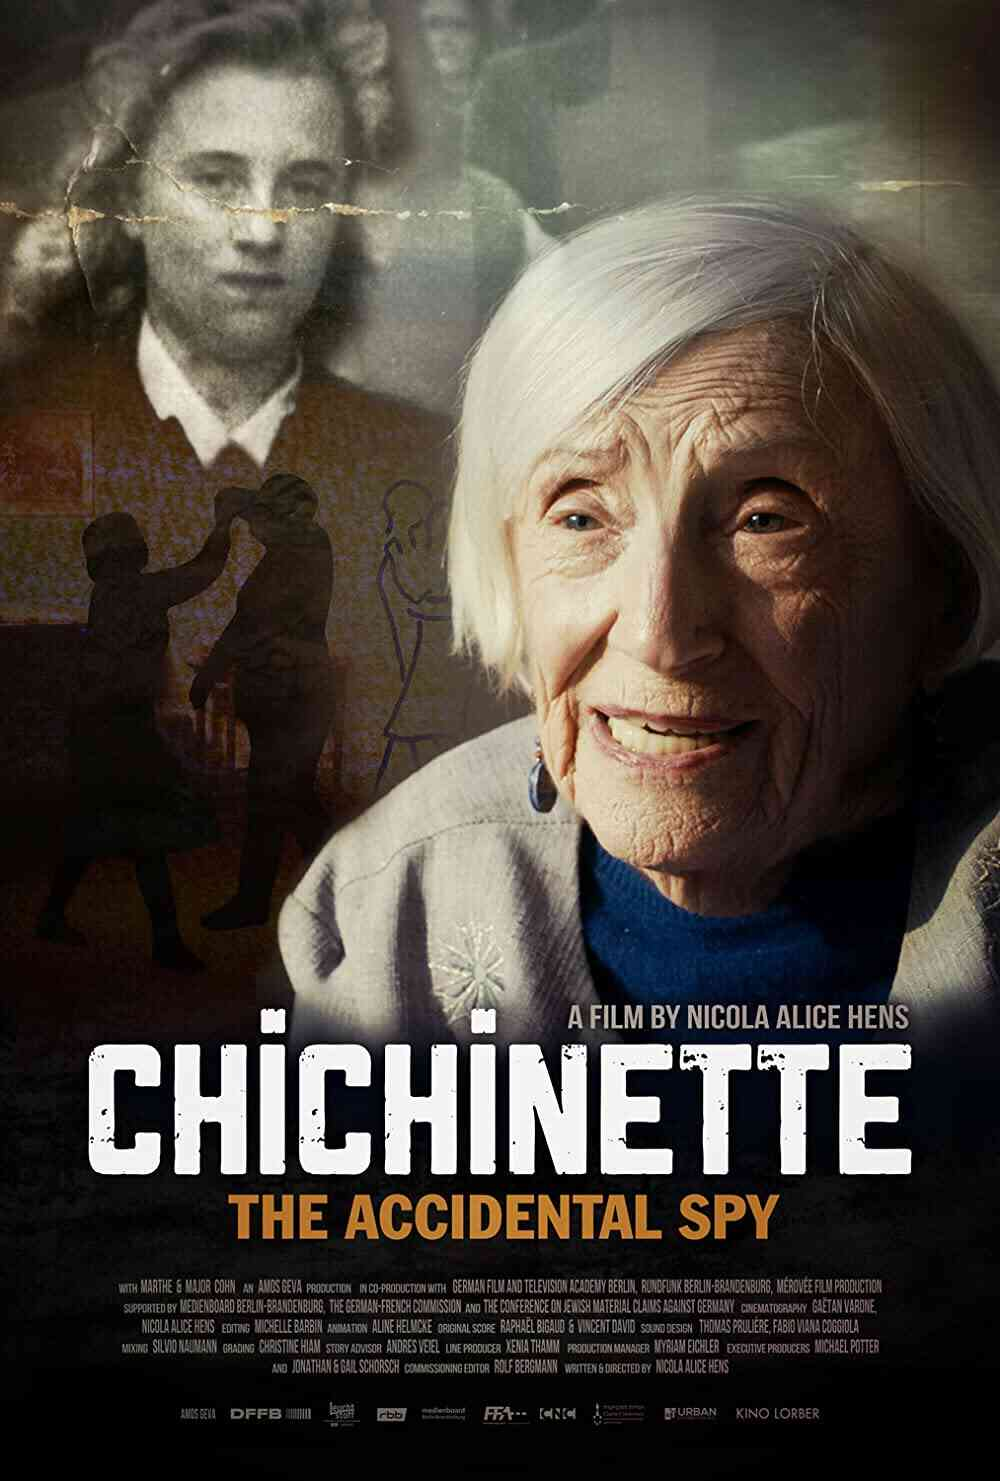 Chichinette: The Accidental Spy